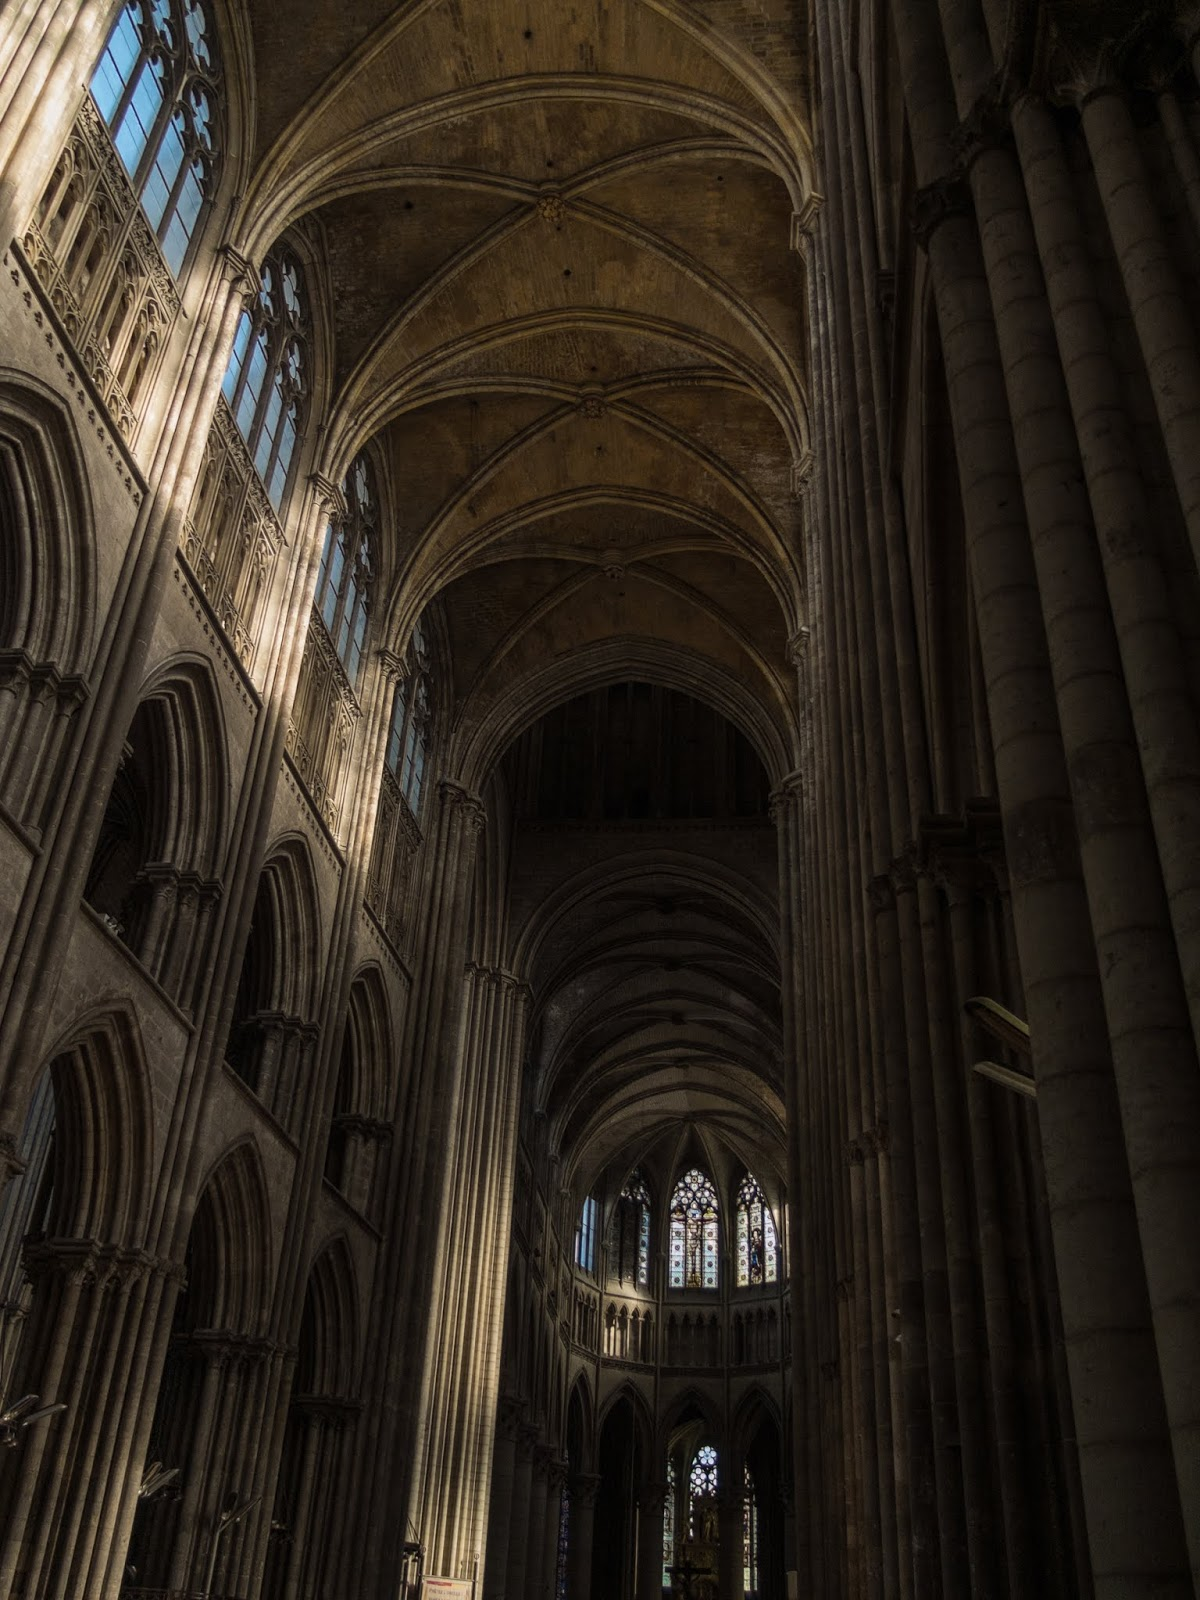 Looking up at the ceiling inside the Cathedral of Rouen.